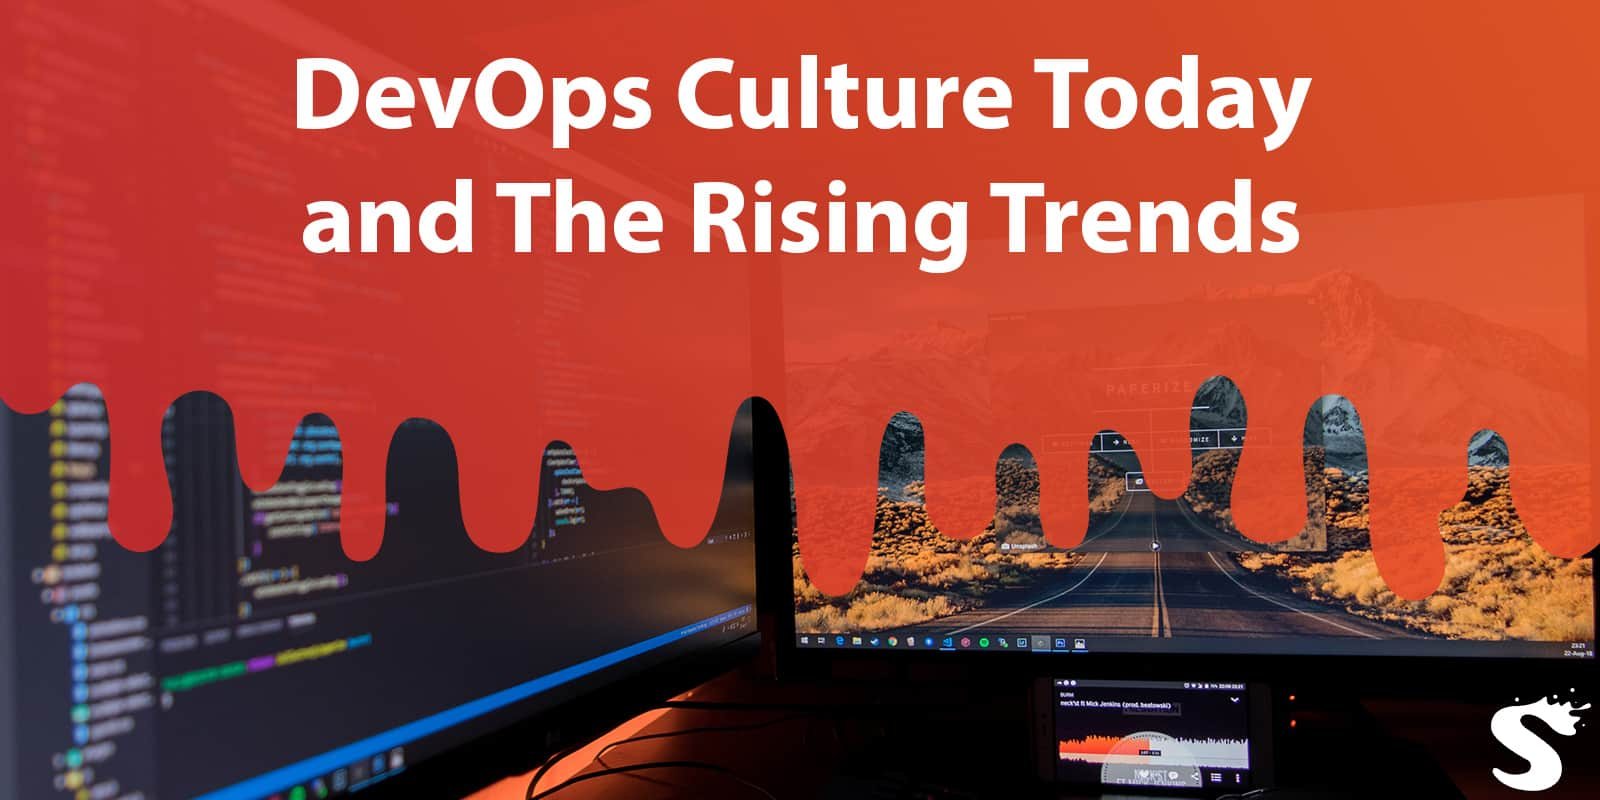 DevOps Culture Today and The Rising Trends